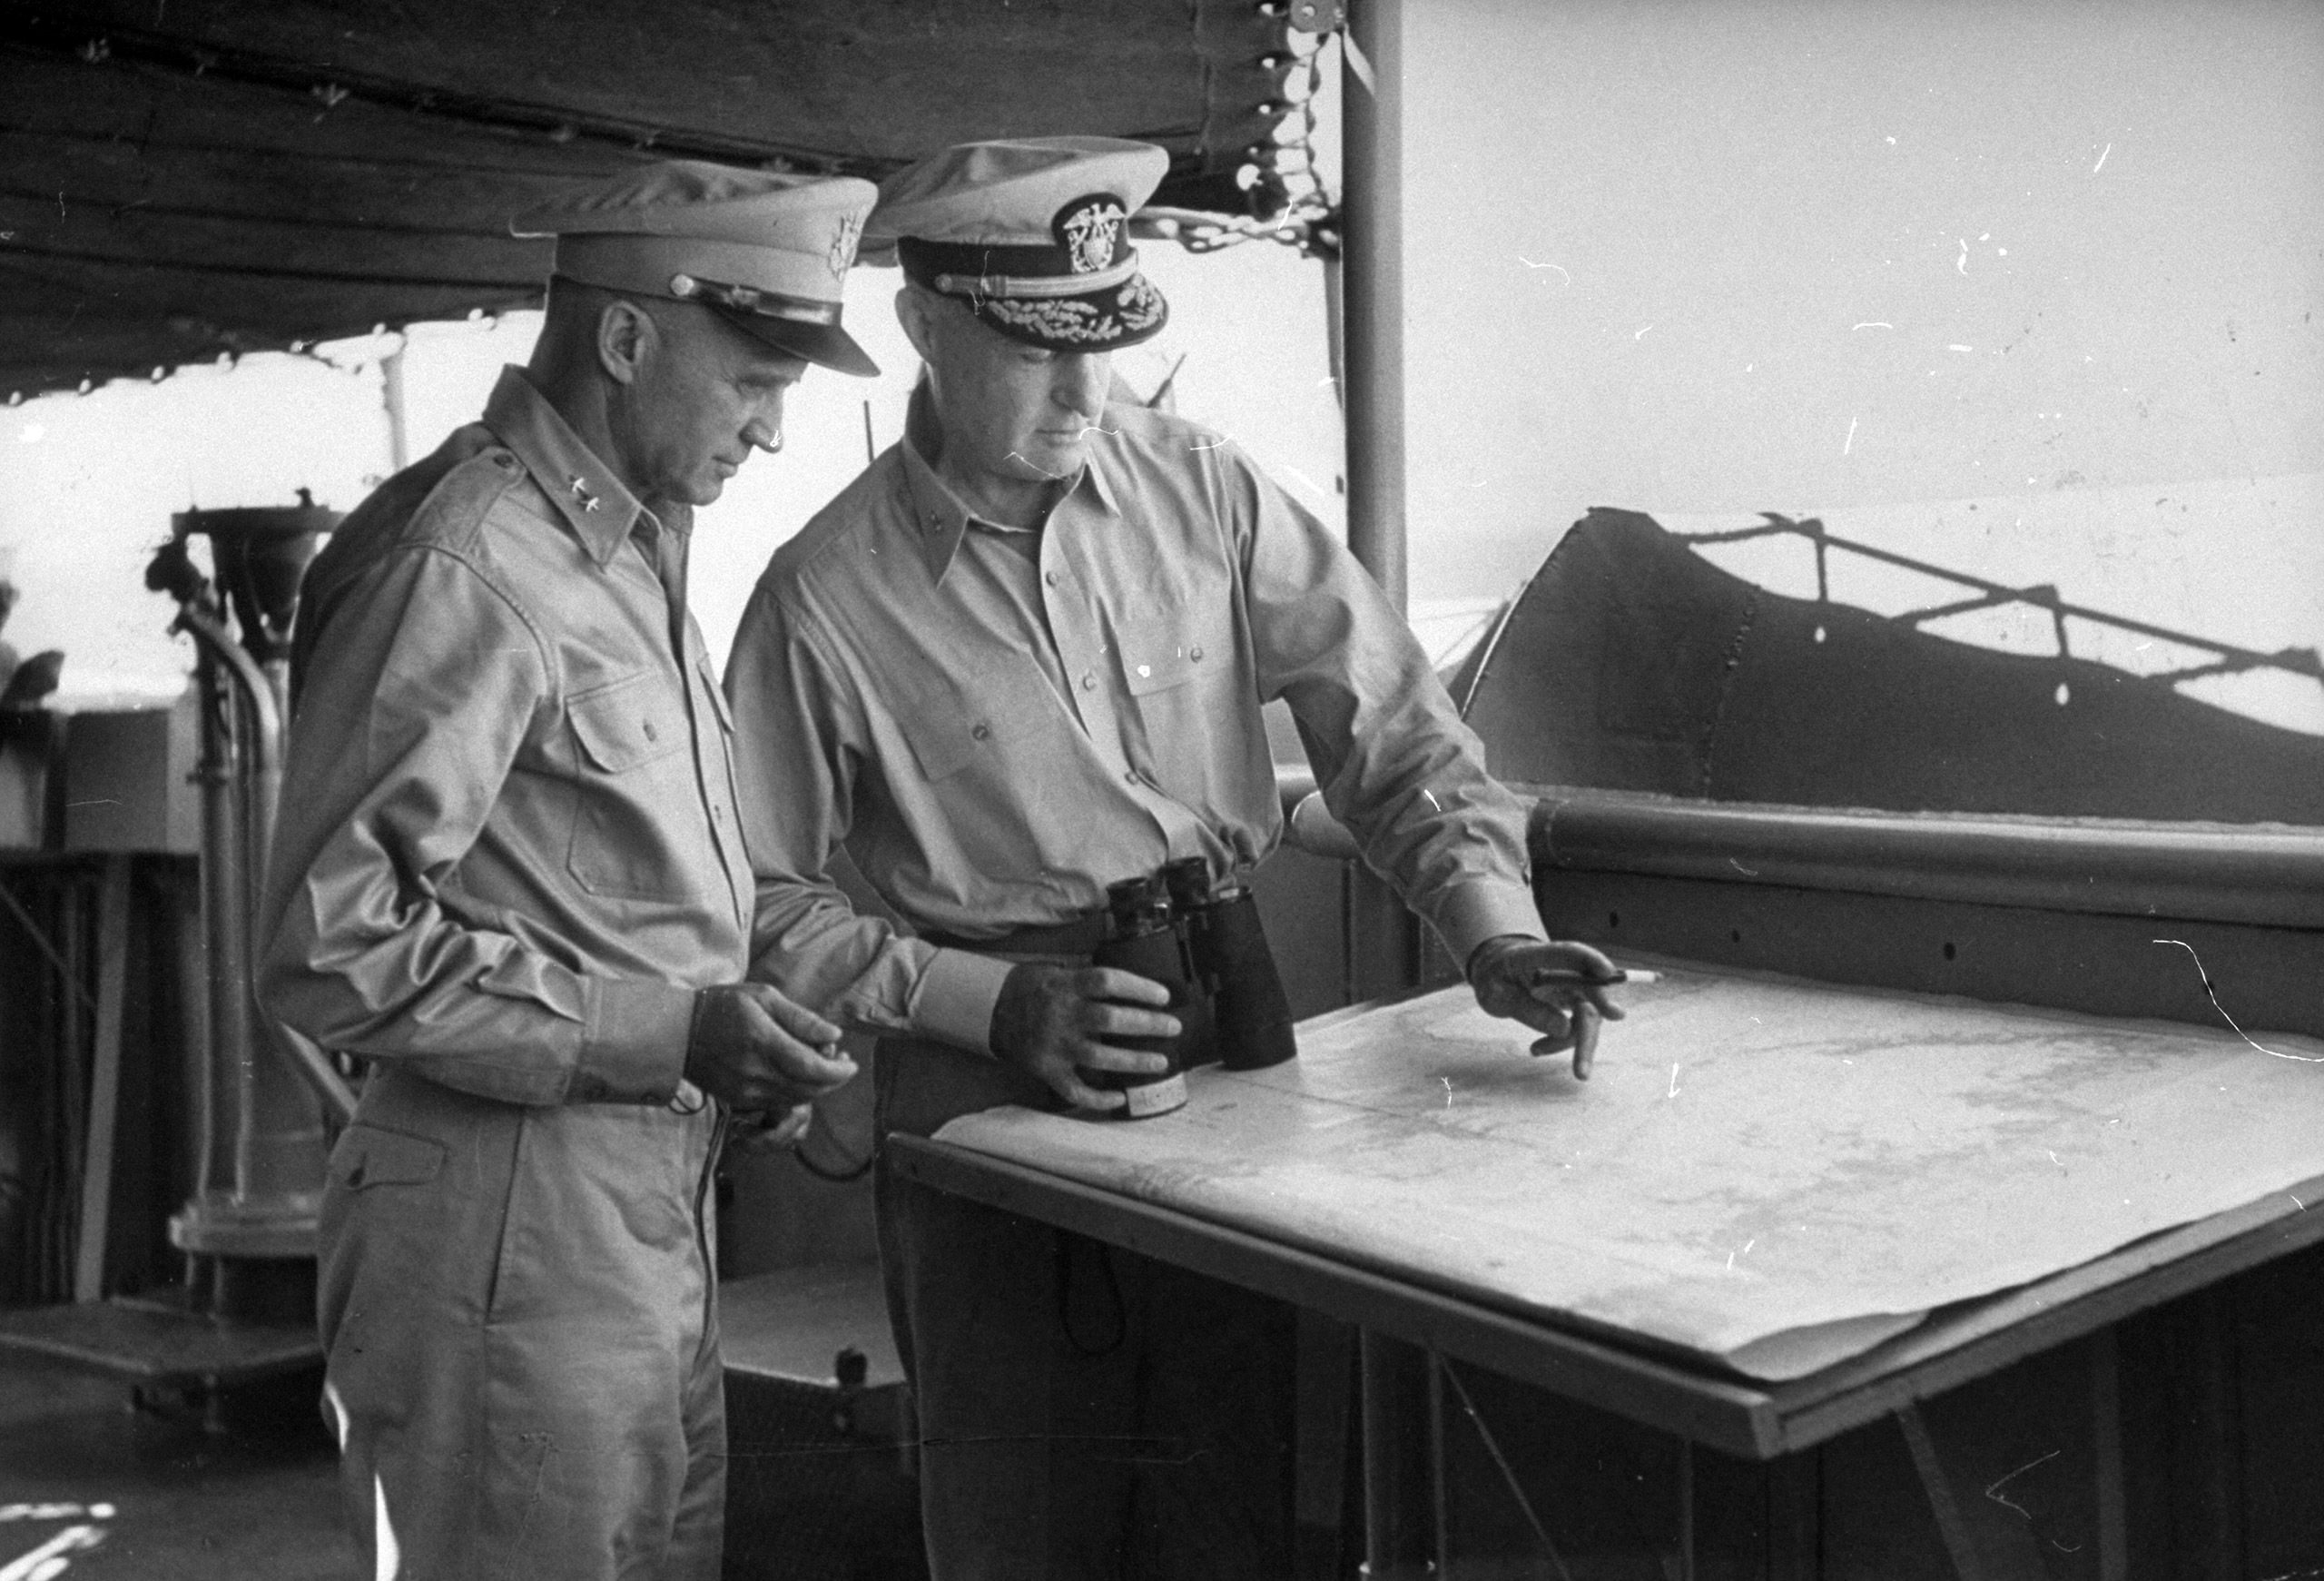 <b>Caption from LIFE.</b> Commanders, 1st Cavalry's General Hobart R. Gay (left), Rear Admiral J.H.Doyle, discuss typhoon menace.